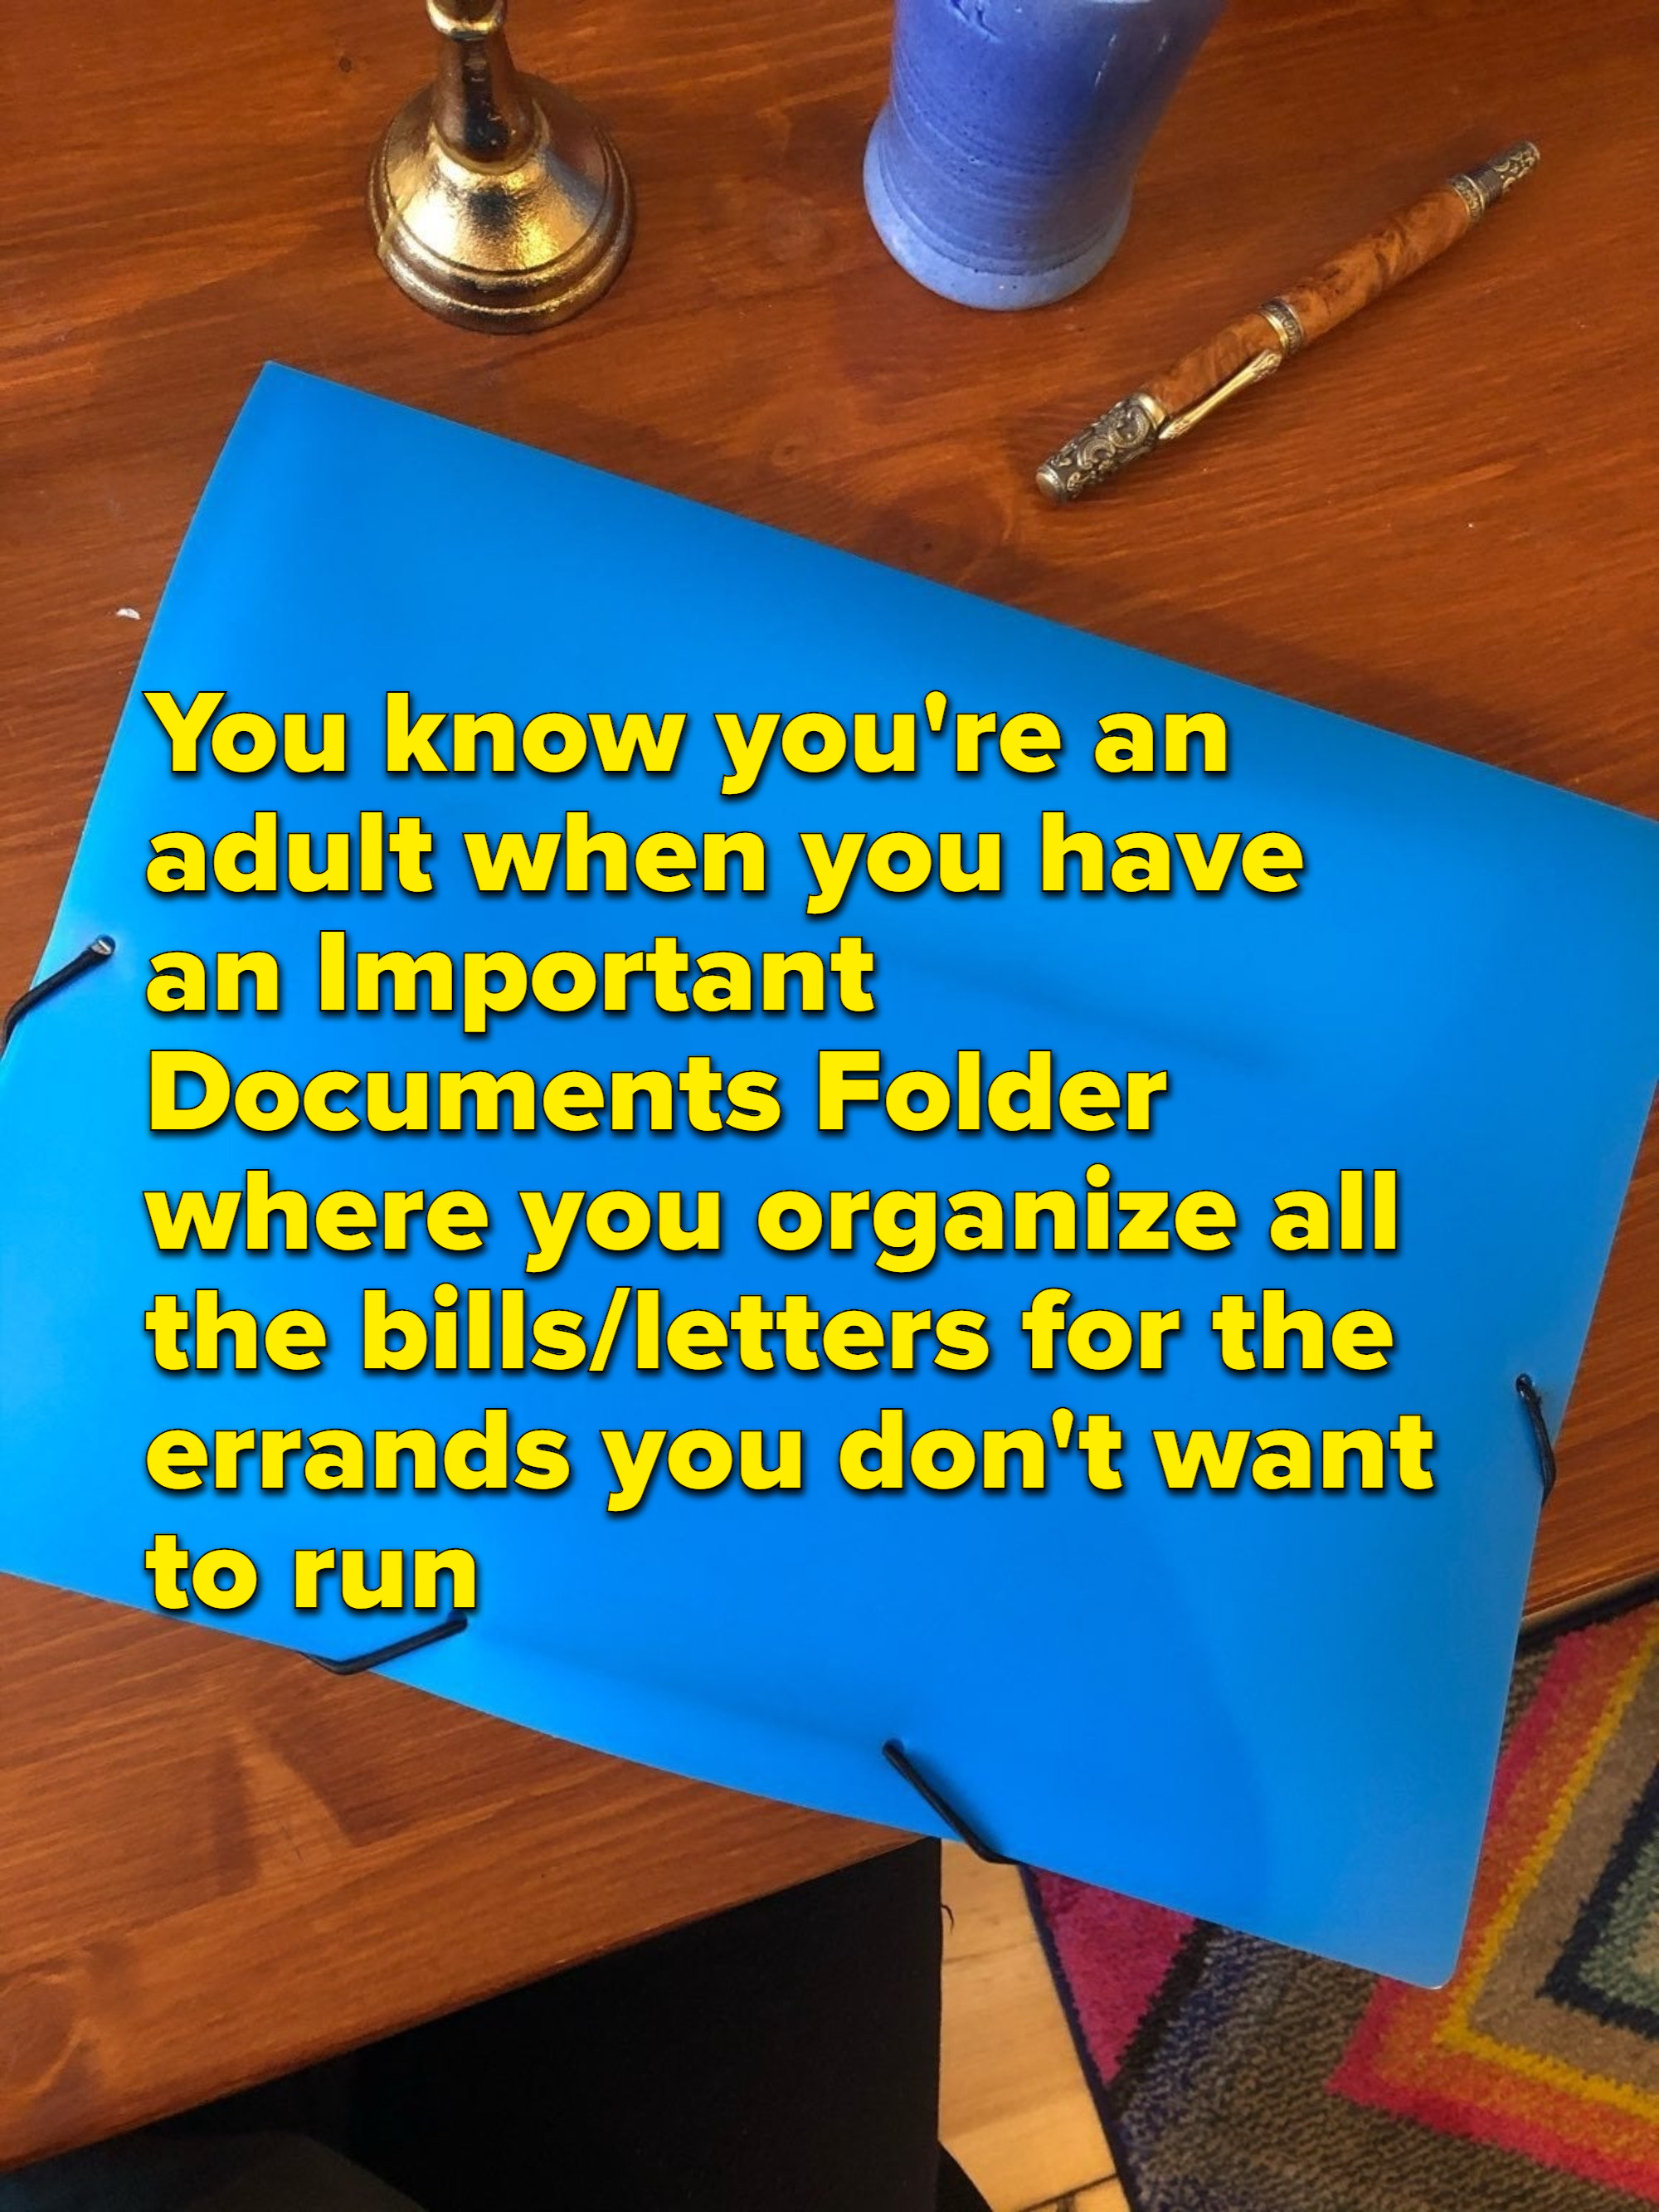 "Bright blue folder on a wooden desk, with text overlay reading, ""You know you're an adult when you have an Important Documents folder where you organize all the bills and letters for the errands you don't want to run"""